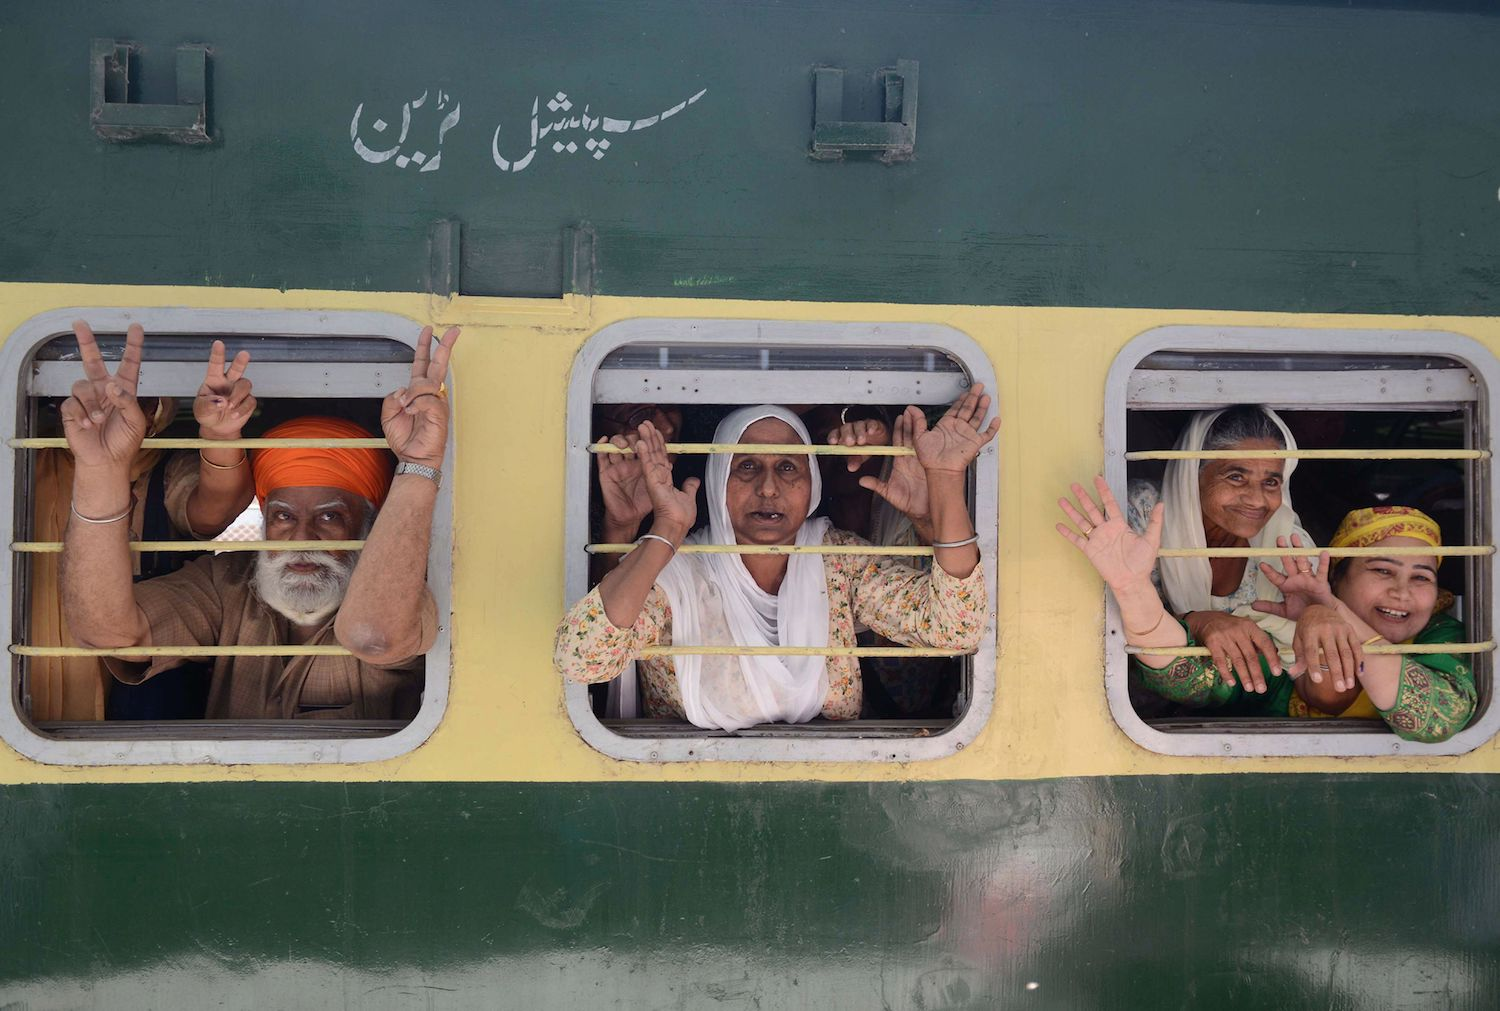 Indian Sikh pilgrims wave from their train at Attari Railway Station before leaving on special service to Lahore to celebrate the Baisakhi festival in Pakistan, on the outskirts of Amritsar on April 12, 2018.